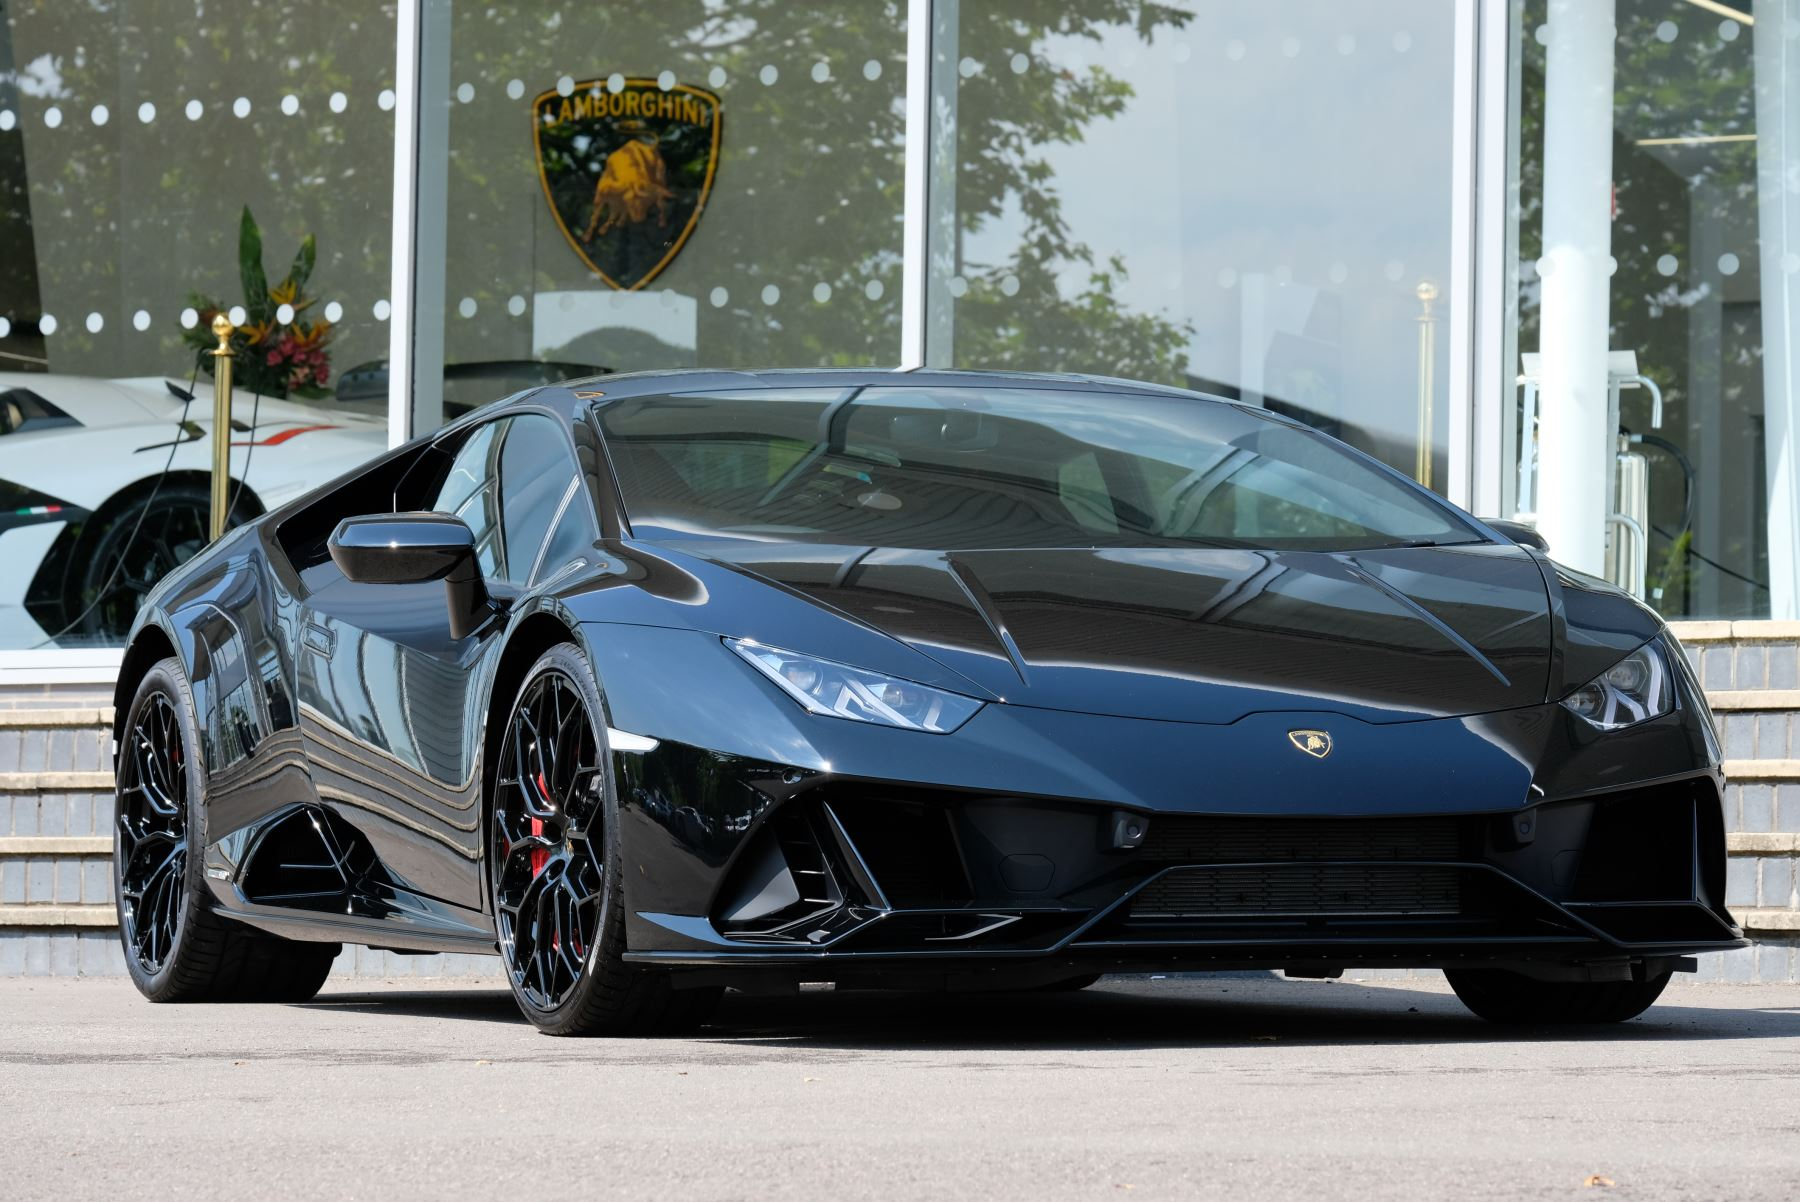 Lamborghini Huracan EVO LP 640-4 5.2 AWD Semi-Automatic 2 door Coupe (2020)